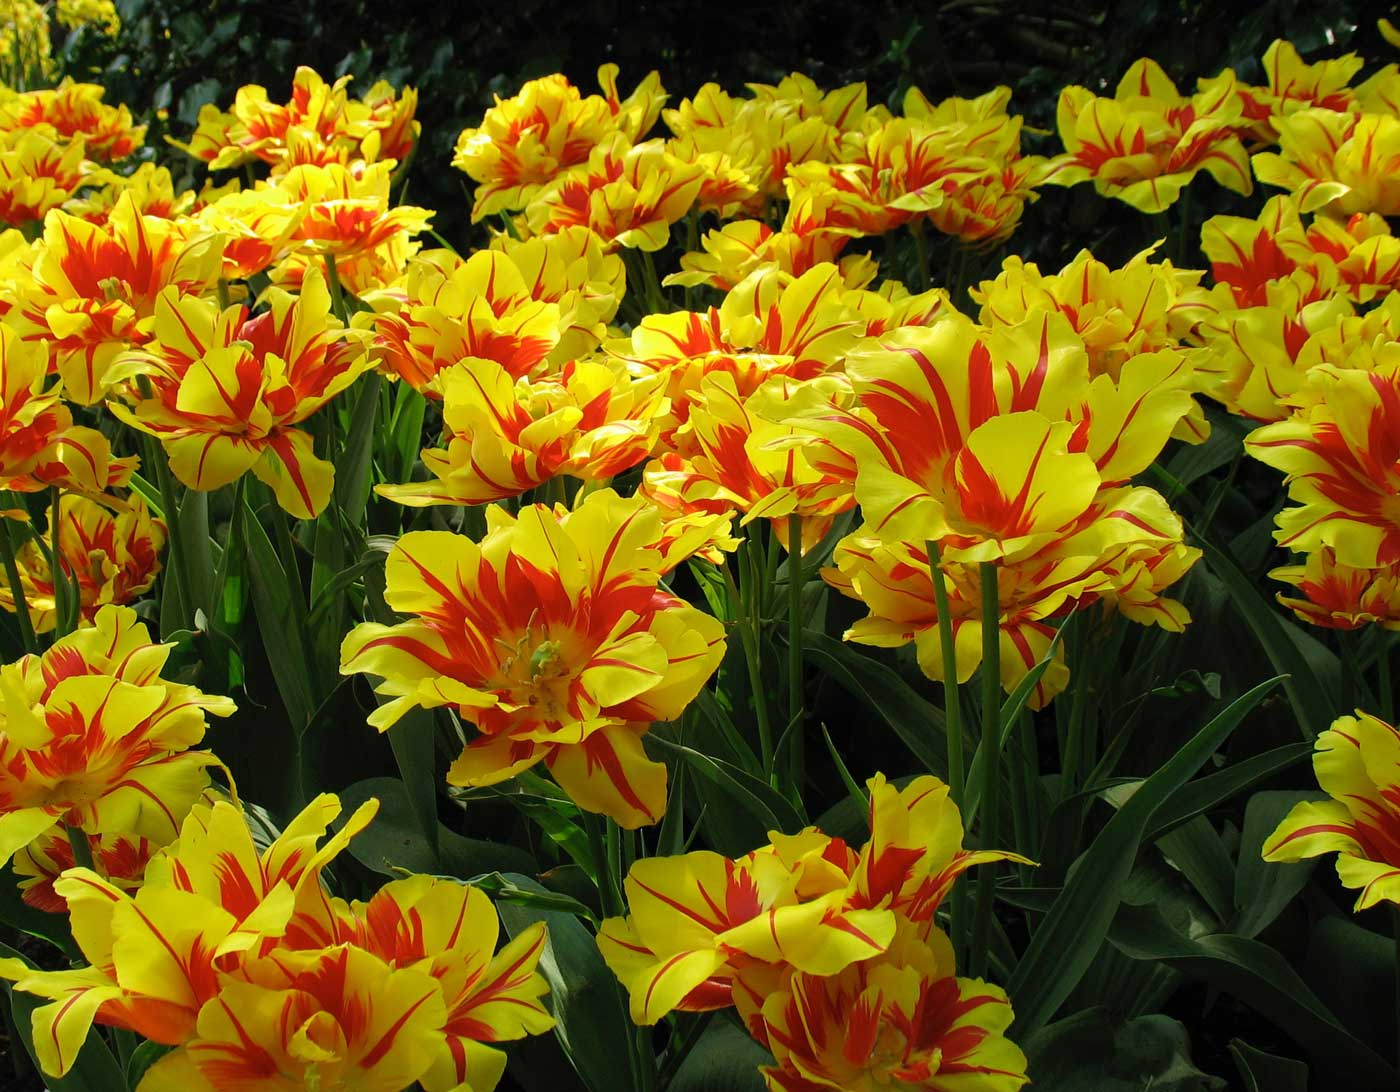 Striped tulips in the spotlight longfield gardens tulips with red and yellow stripes mightylinksfo